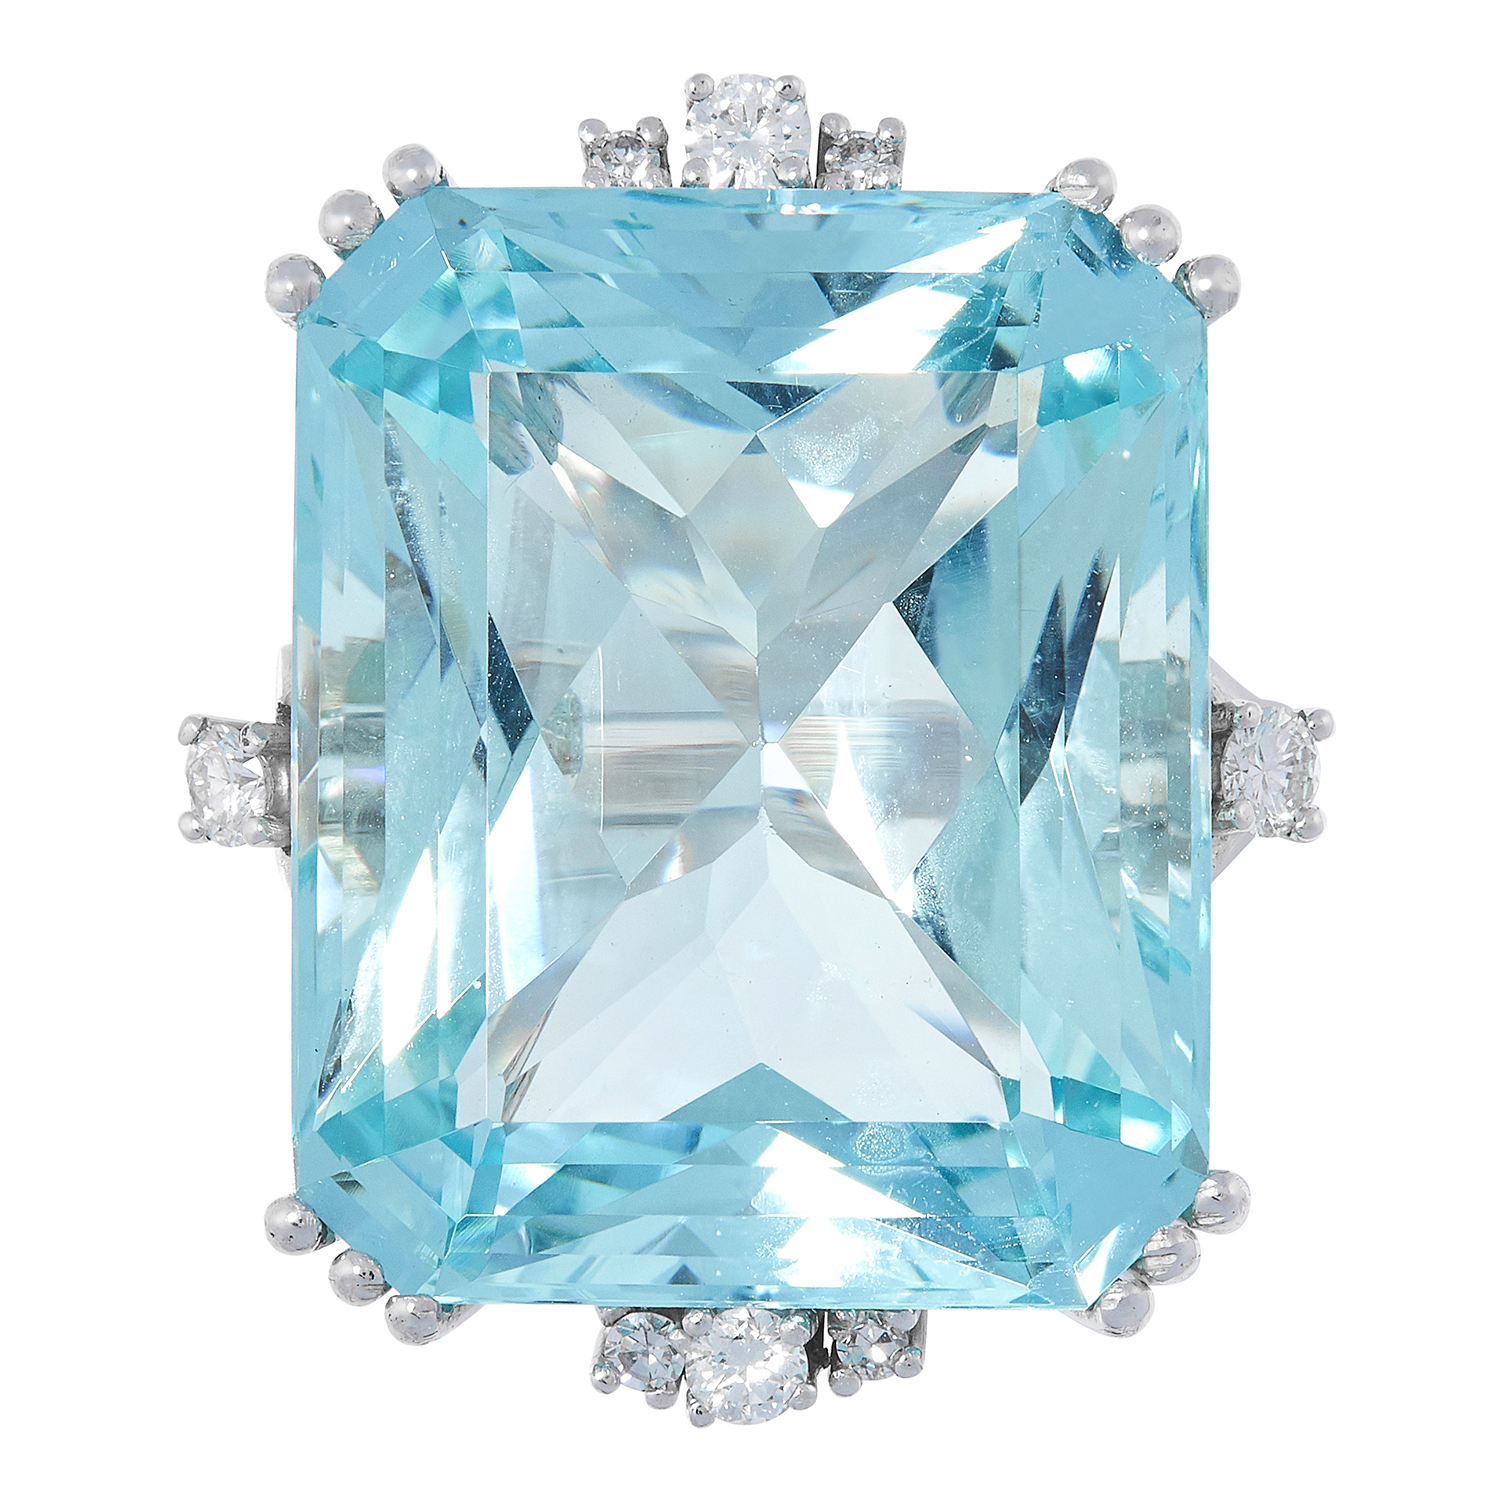 AQUAMARINE AND DIAMOND RING set with an emerald cut aquamarine of approximately 26.00 carats and